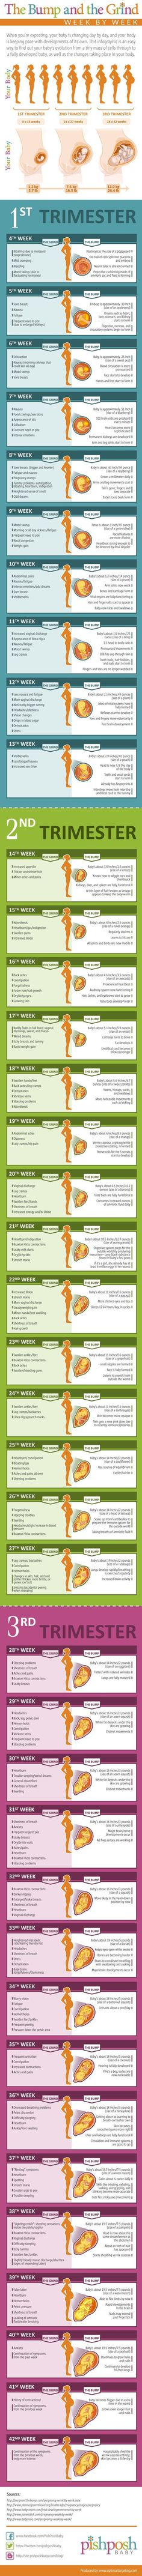 Pregnancy Week by Week Chart - Amazing